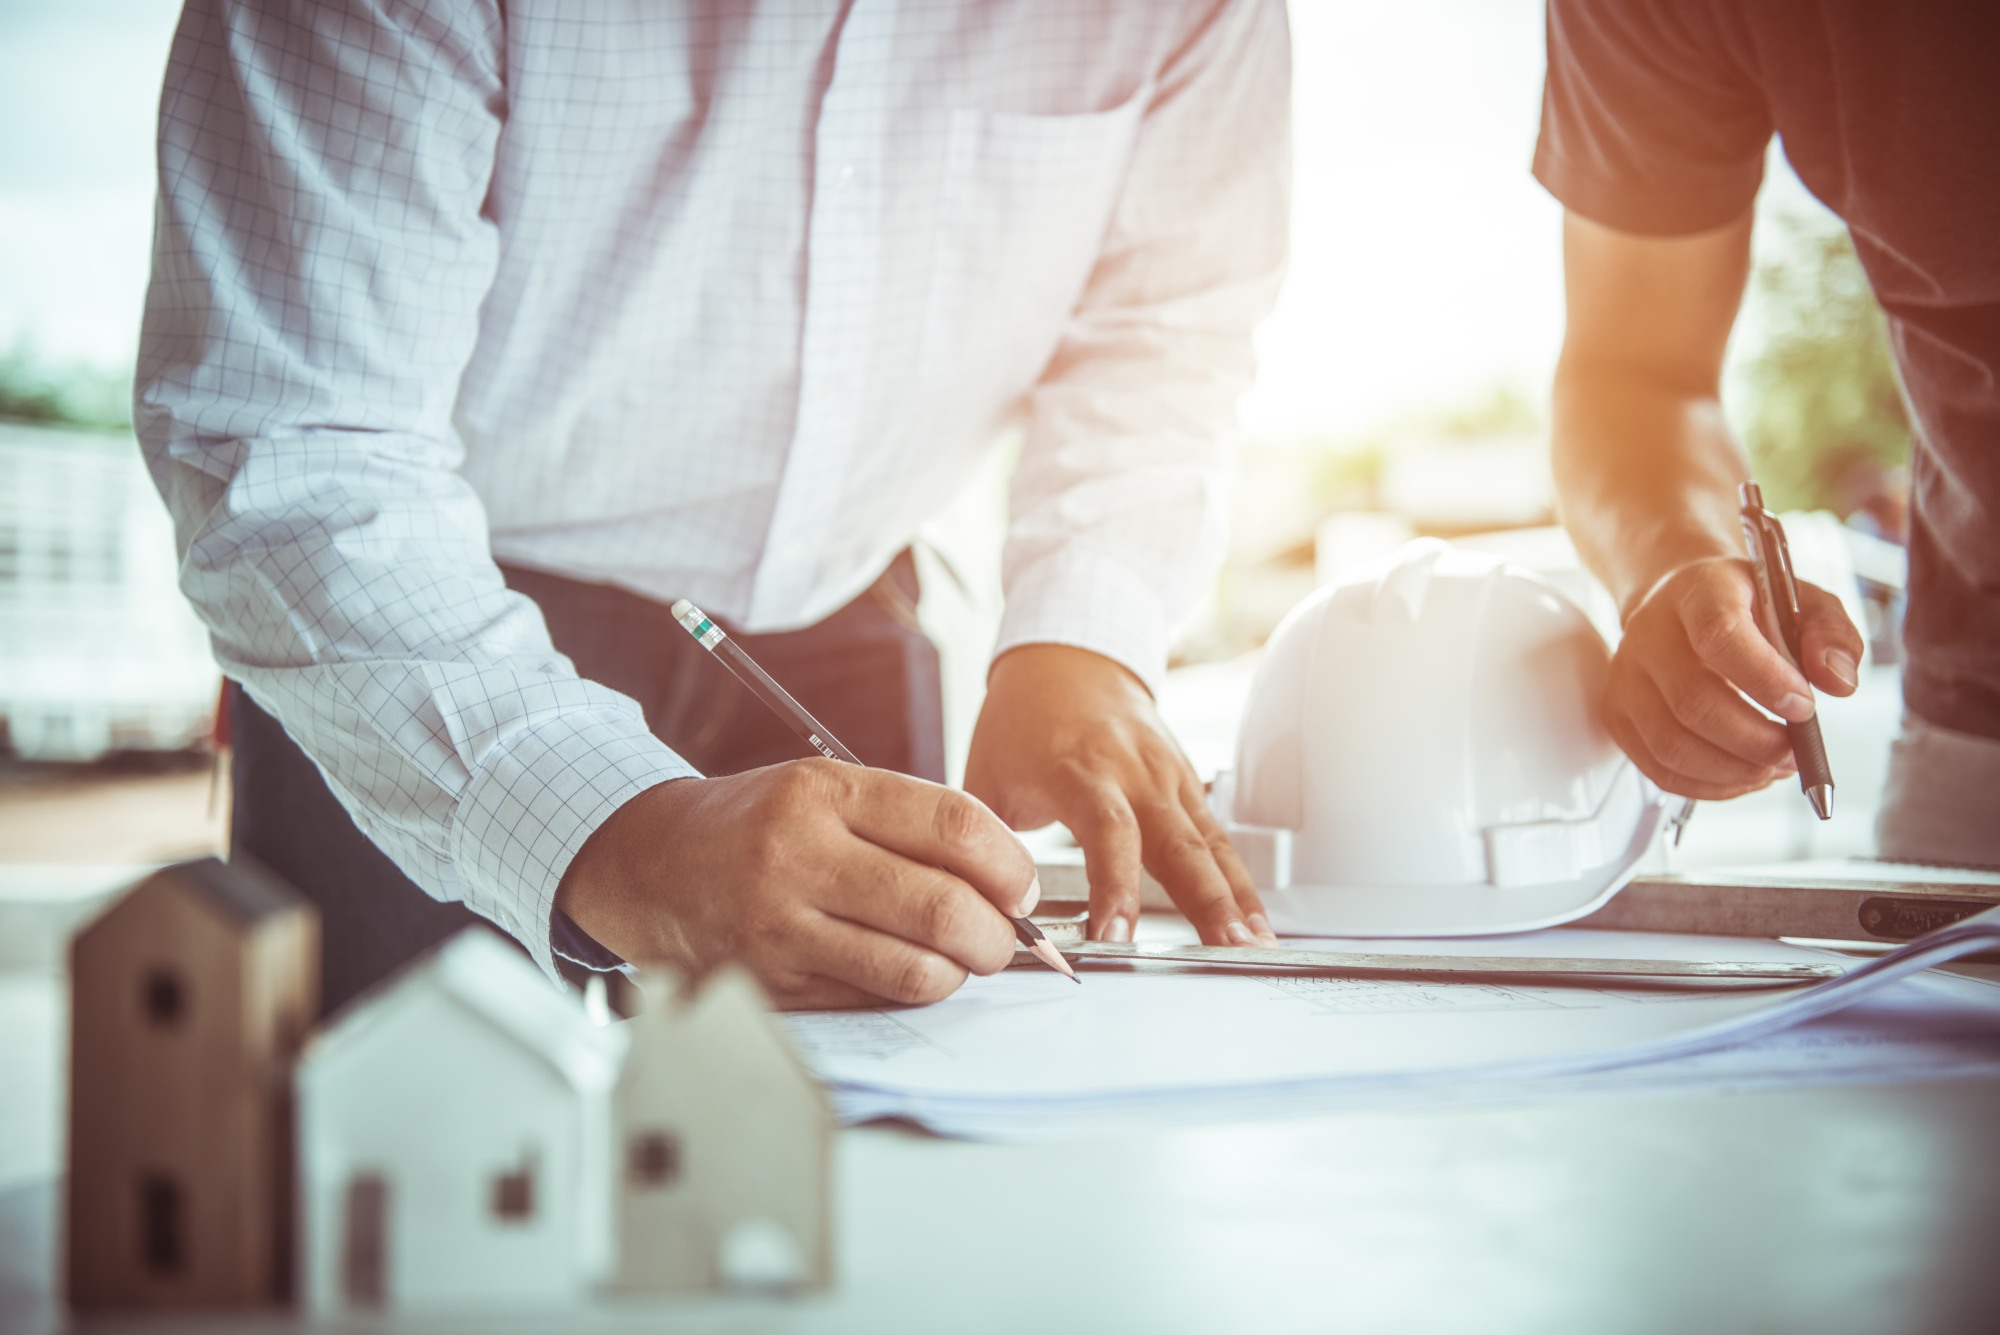 Multifamily Real Estate: Construction Industry Tech Trends